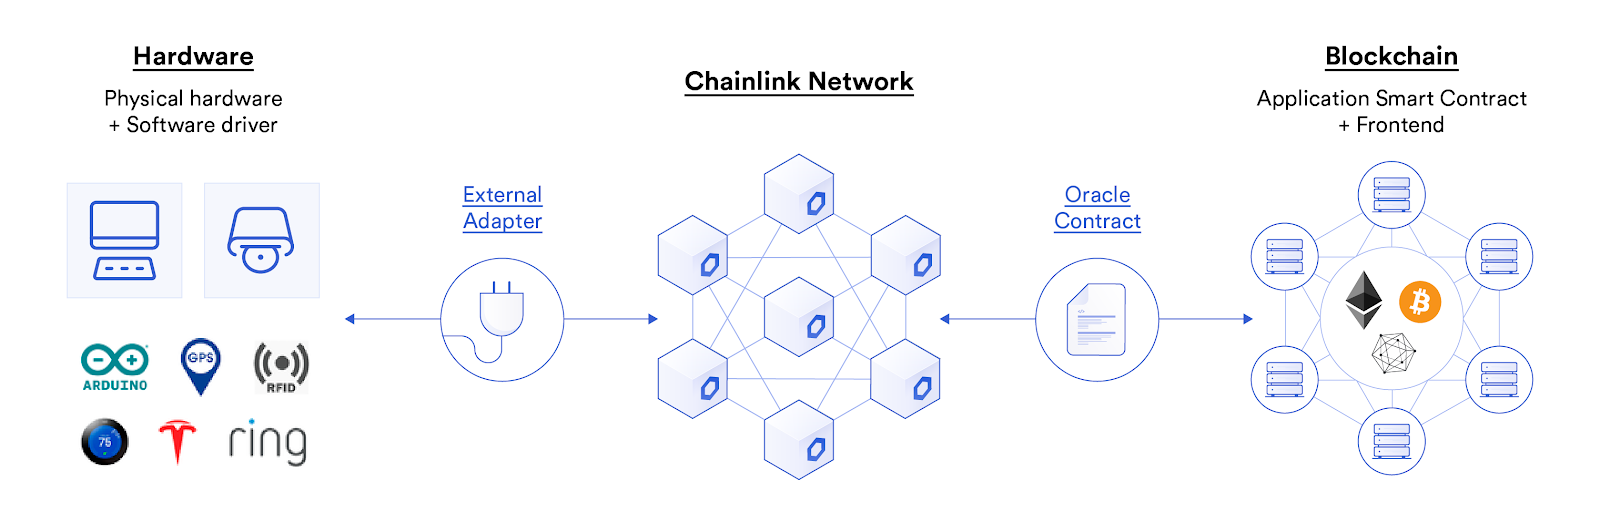 Chainlink External Adapter for IoT Devices